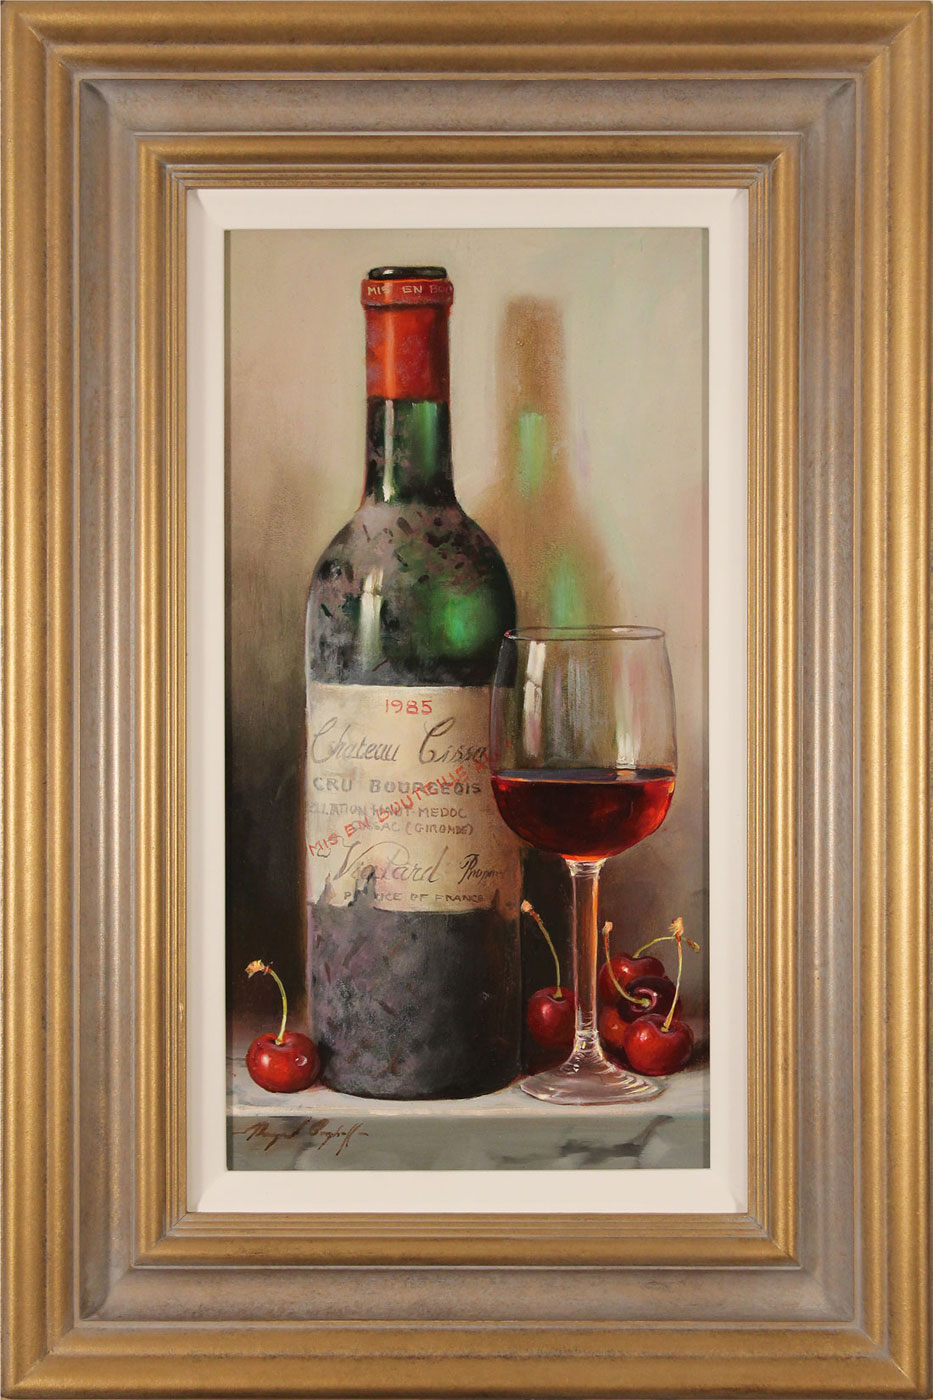 Raymond Campbell, Original oil painting on panel, Chateau Cissac, 1985. Click to enlarge